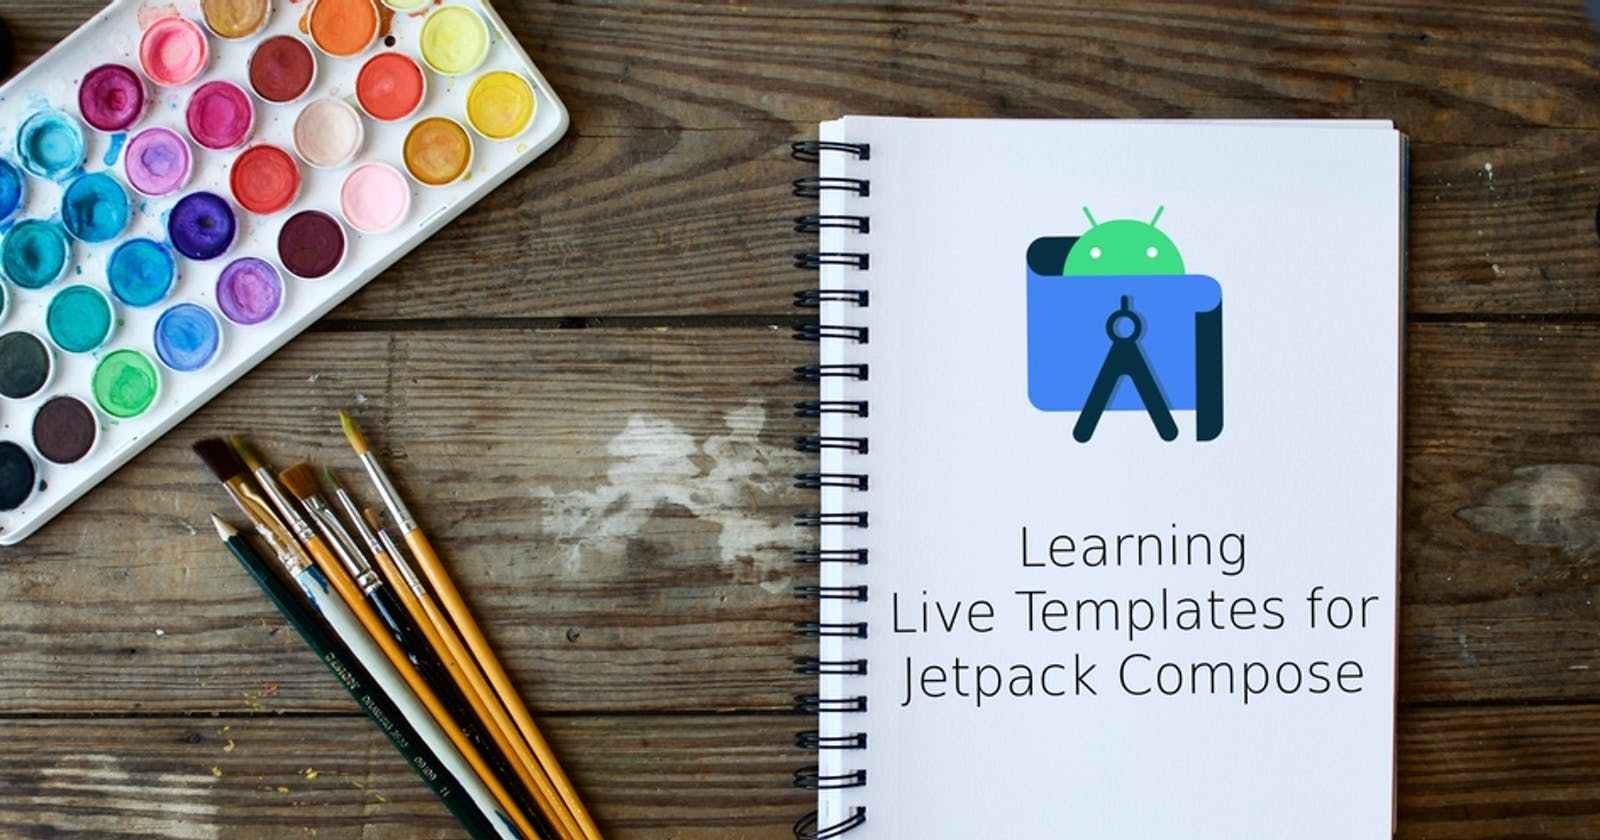 Learning Live Templates for Jetpack Compose